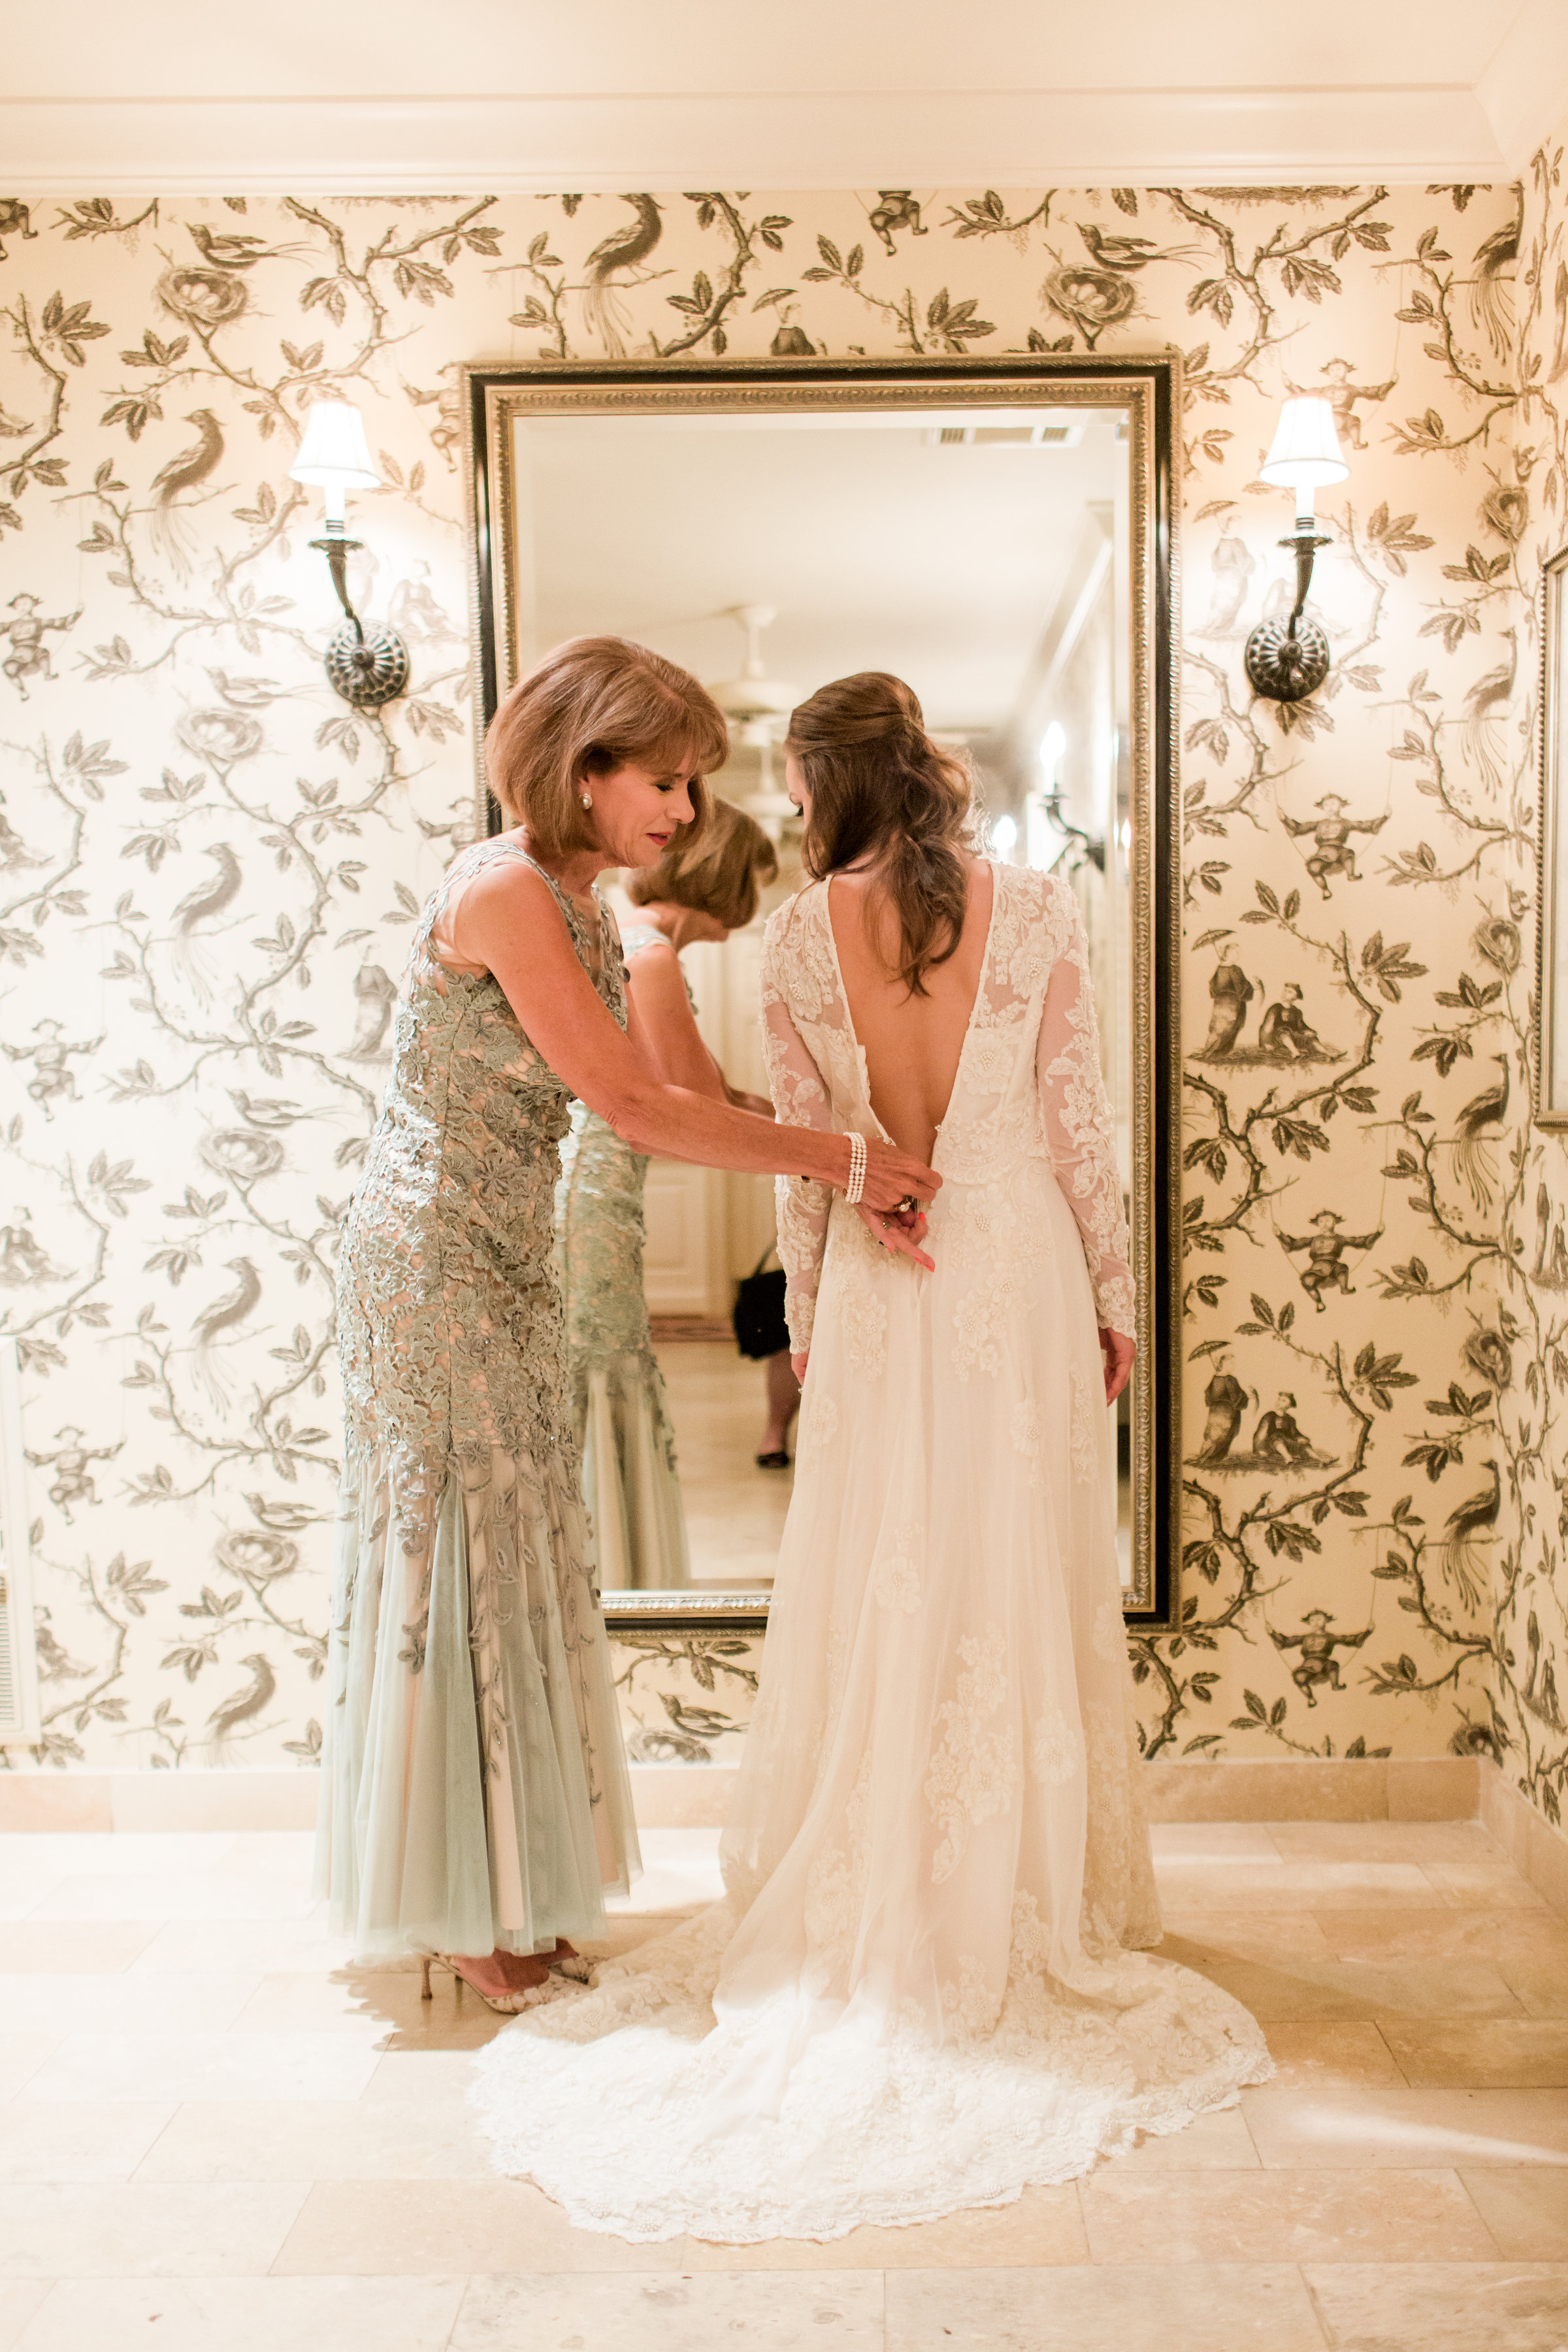 One of the most special parts of the wedding was getting to wear my mom's wedding dress. My mom and dad were married in January of 1976. Her dress came from Neiman Marcus and has stood the test of time.